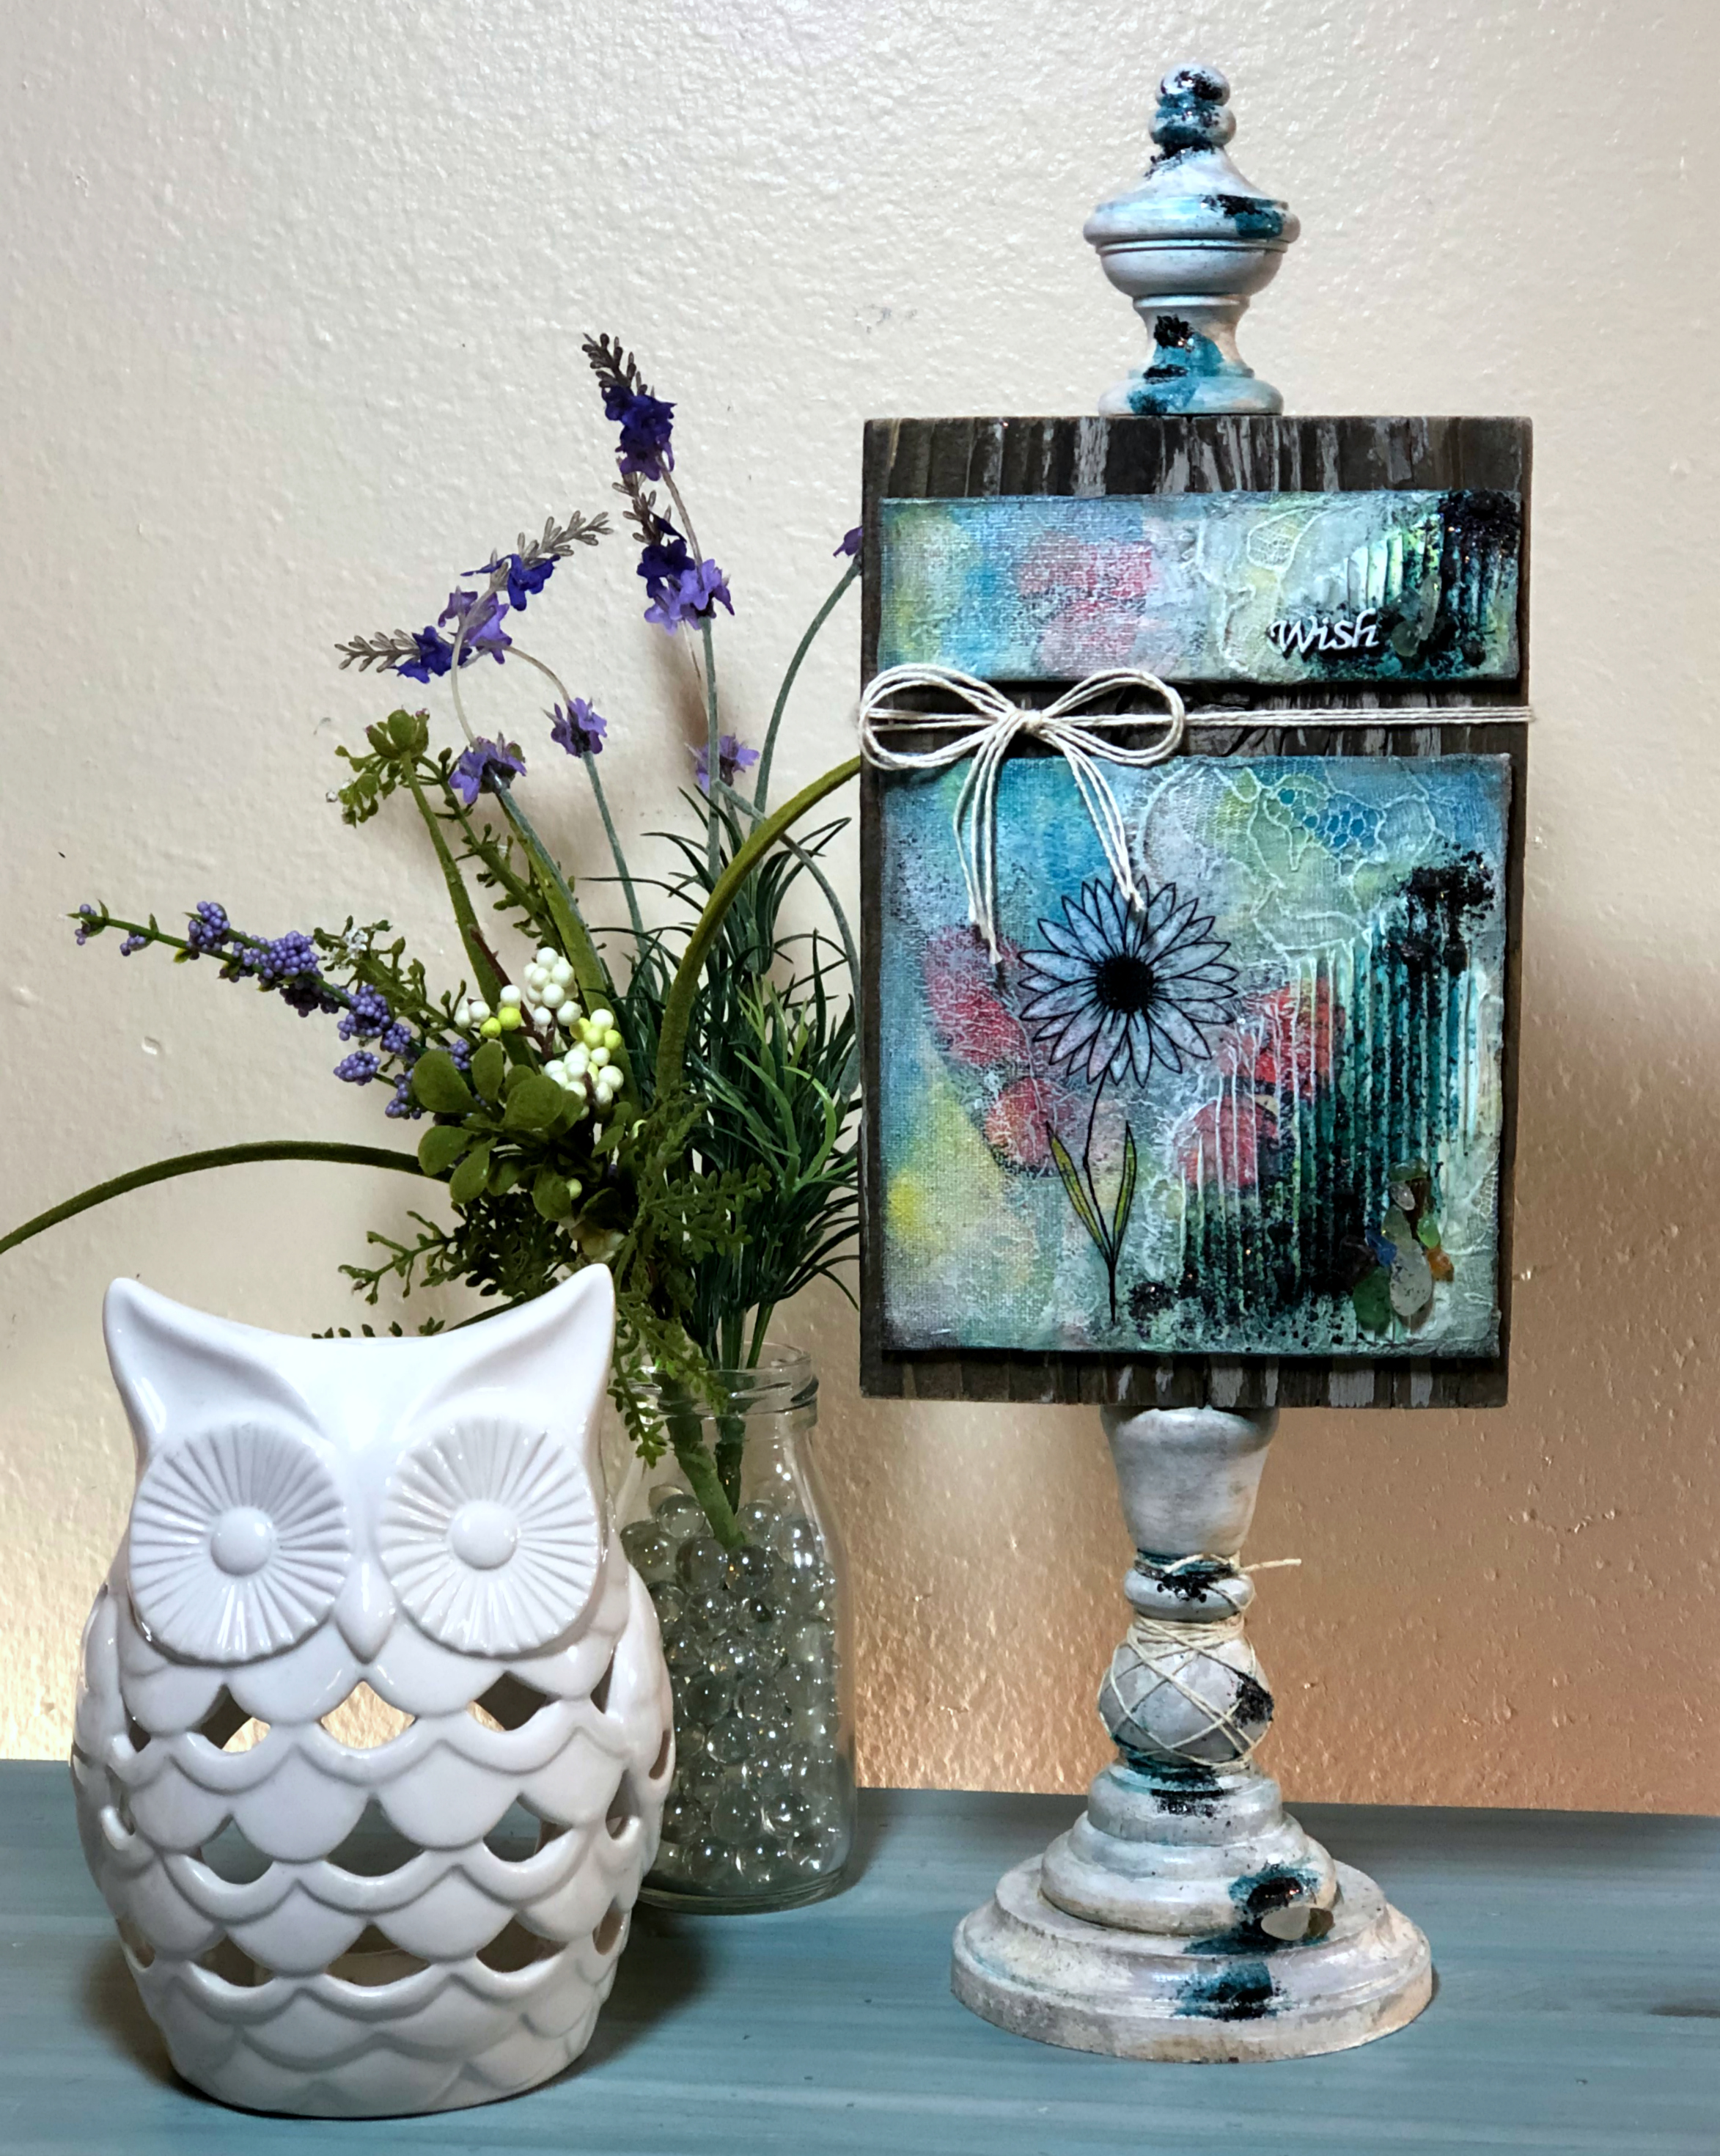 Mixed Media wishes home setting